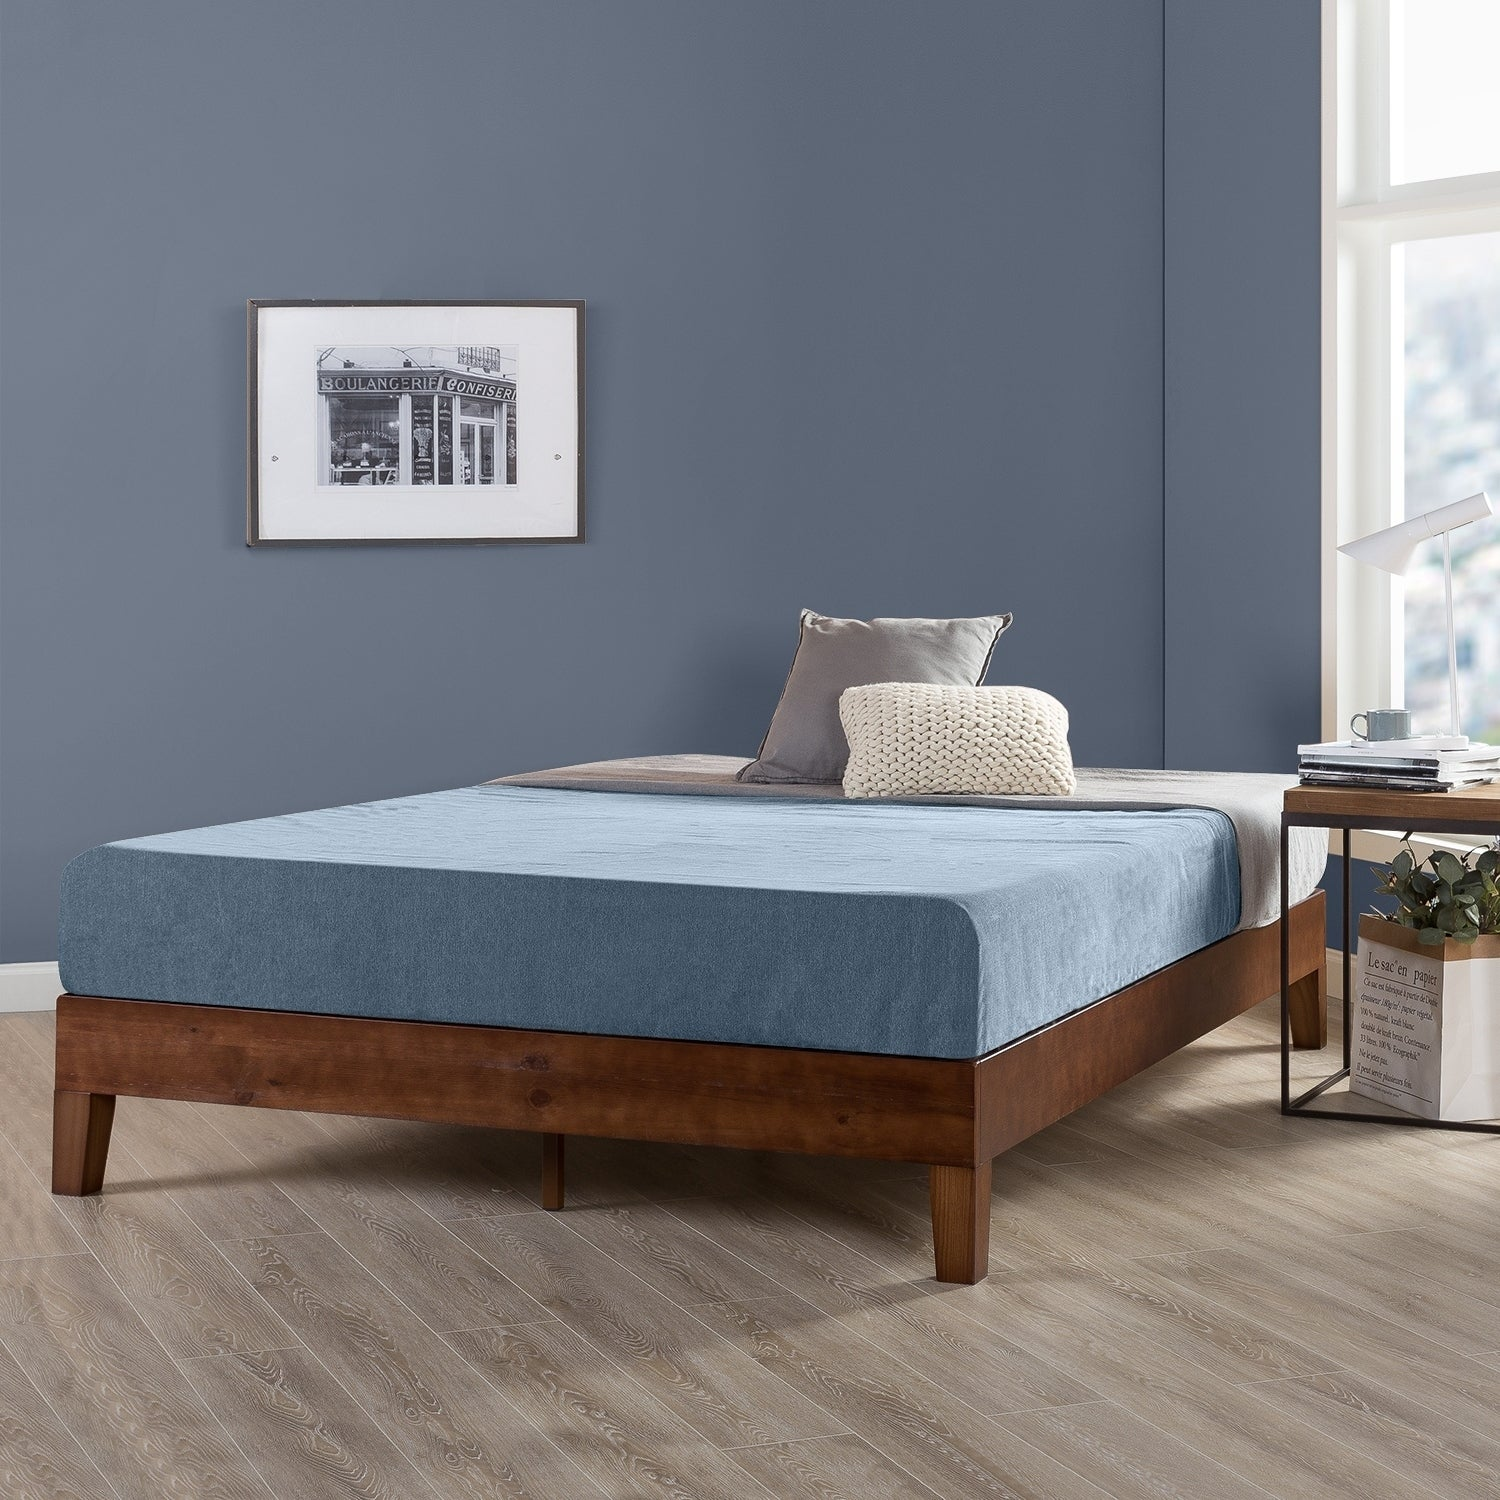 Picture of: Full Size 12 Inch Grand Solid Wood Platform Bed Frame Antique Espresso Crown Comfort On Sale Overstock 22378104